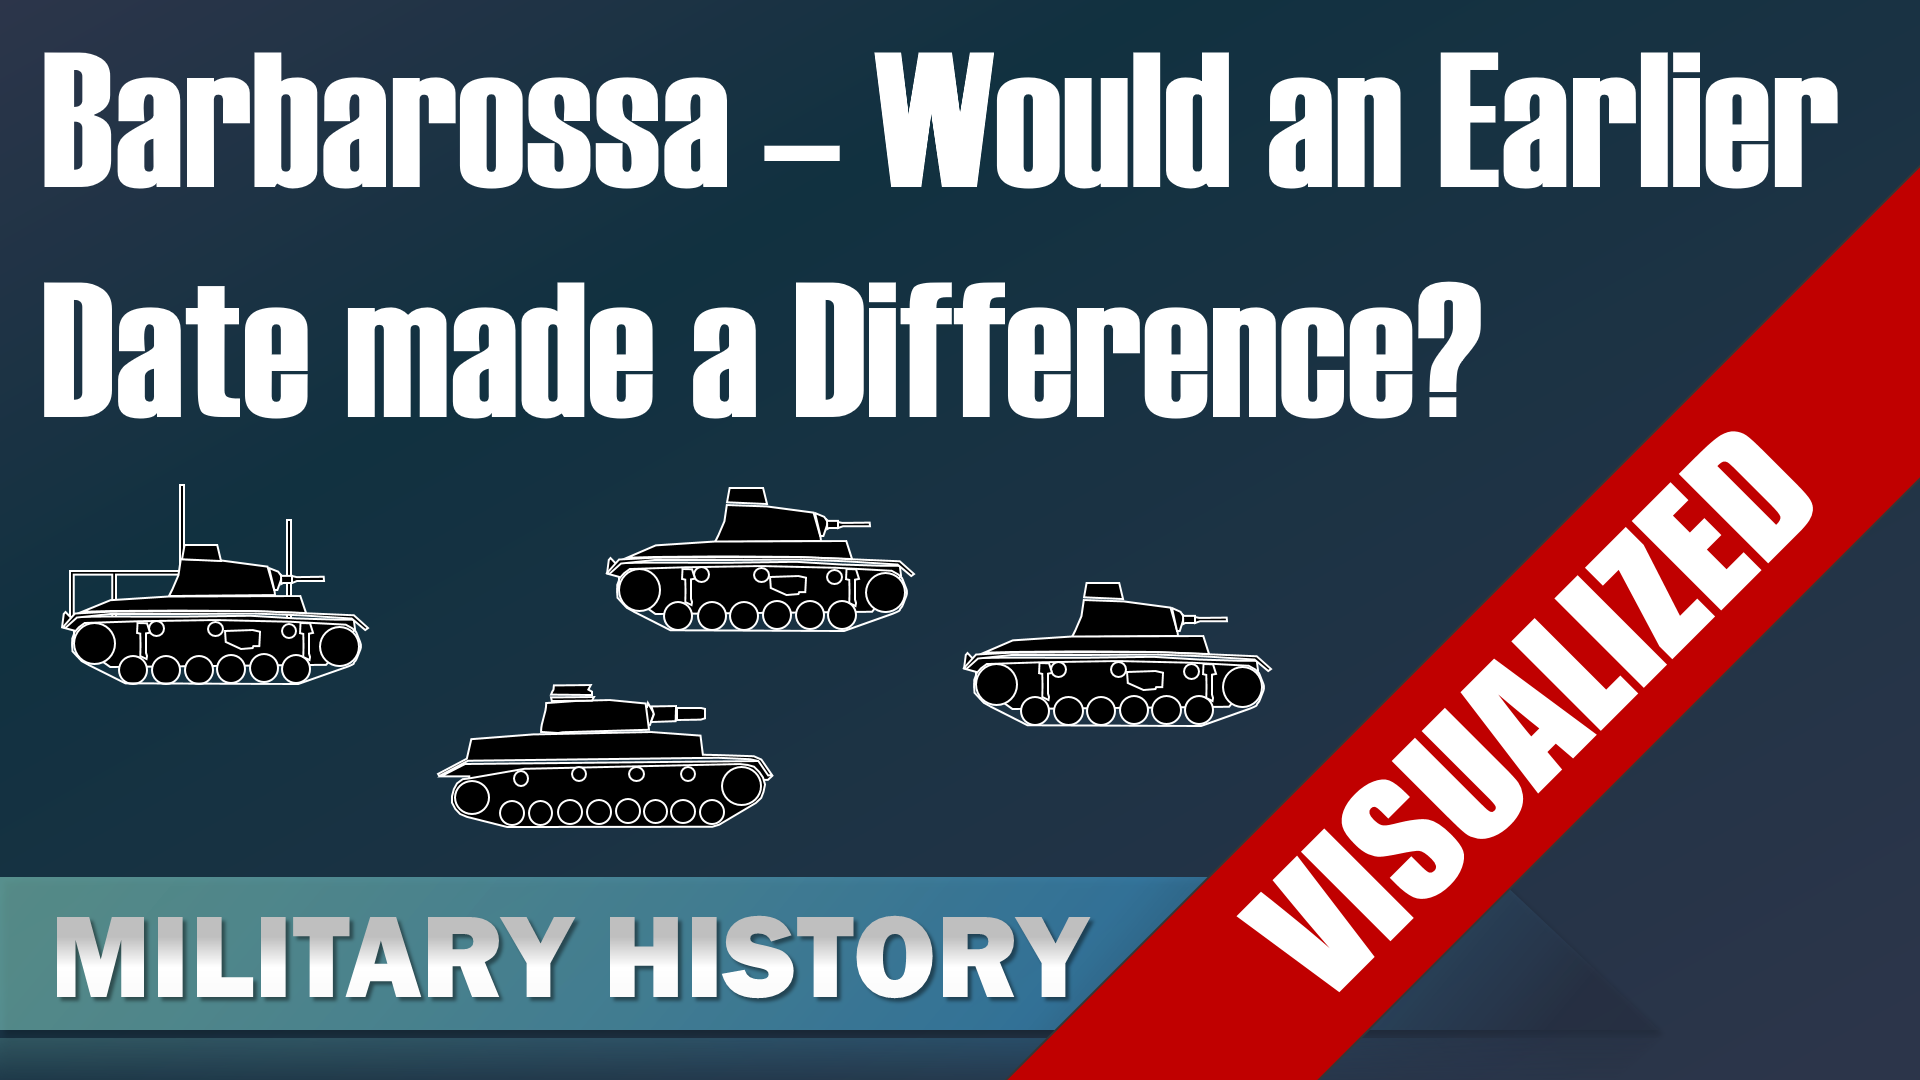 Barbarossa would an earlier date made a difference?